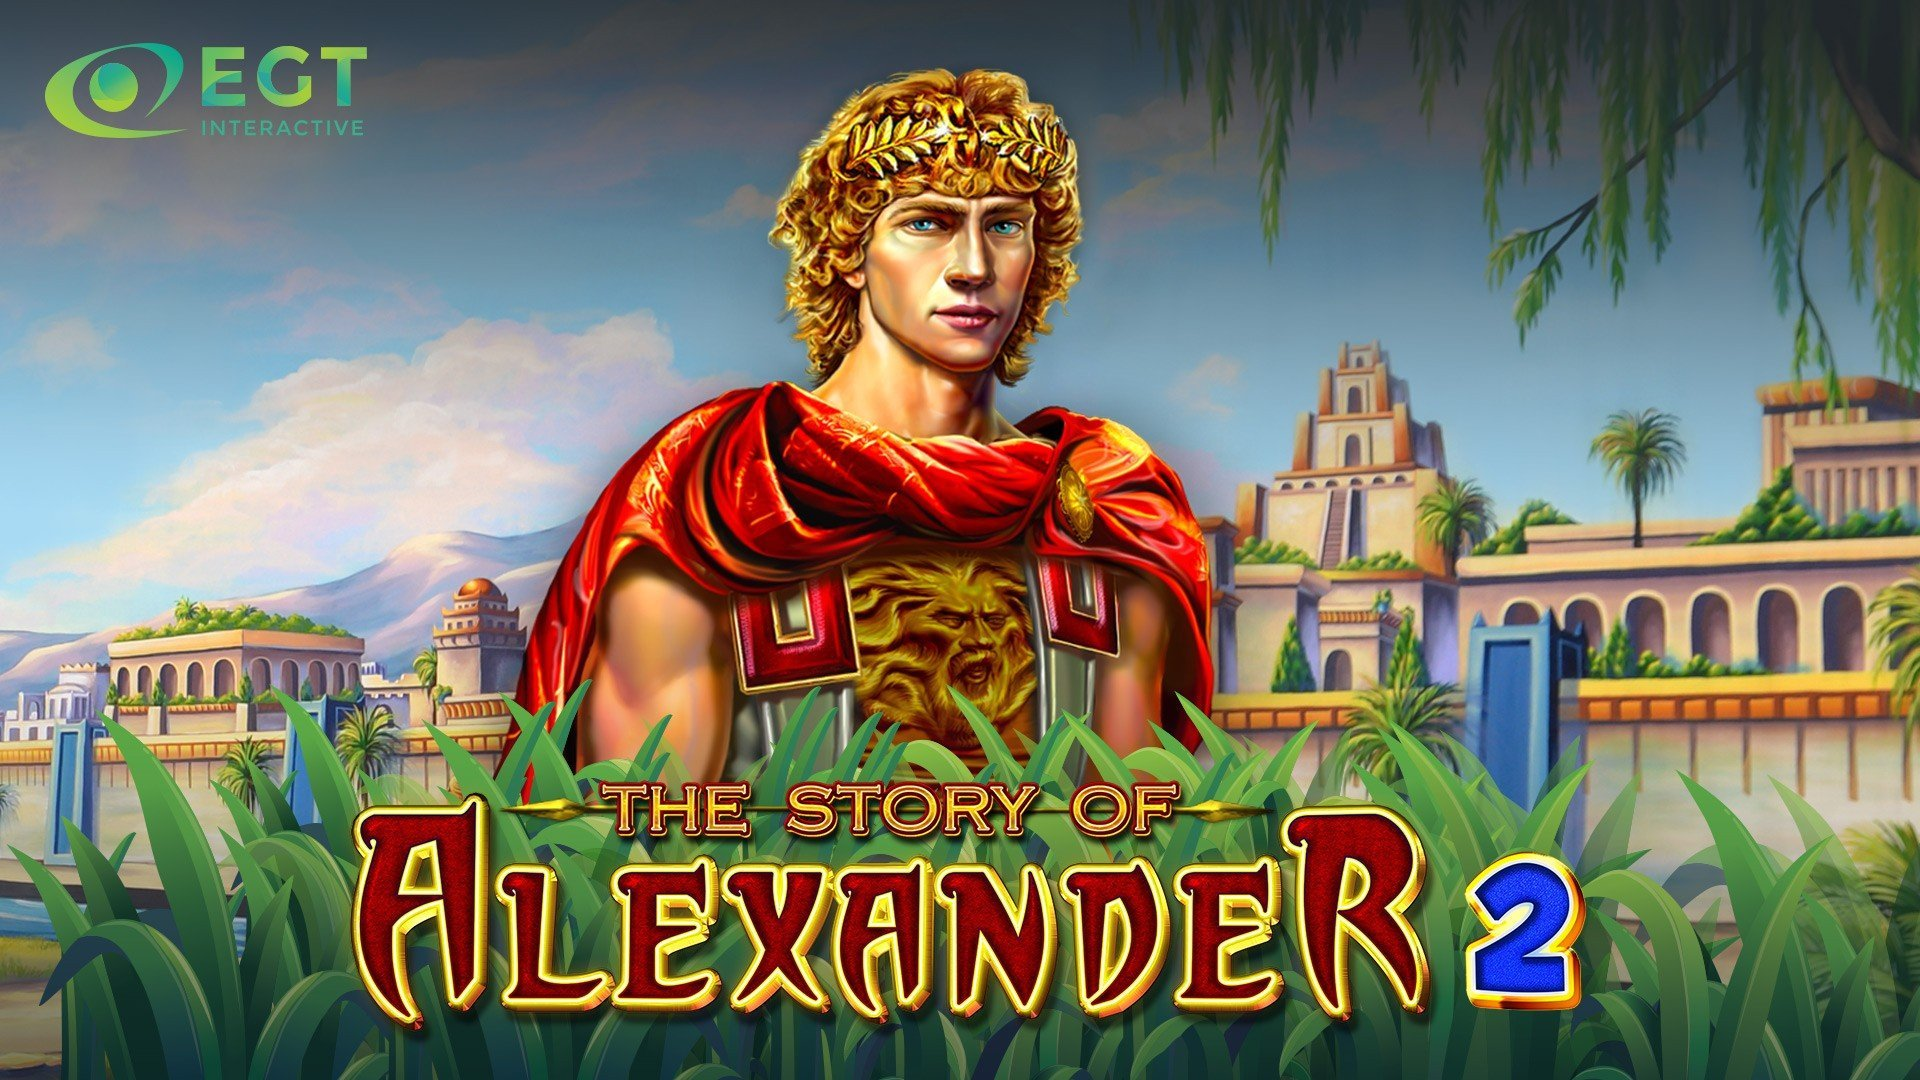 EGT Interactive Latest Offering The Story Of Alexander 2